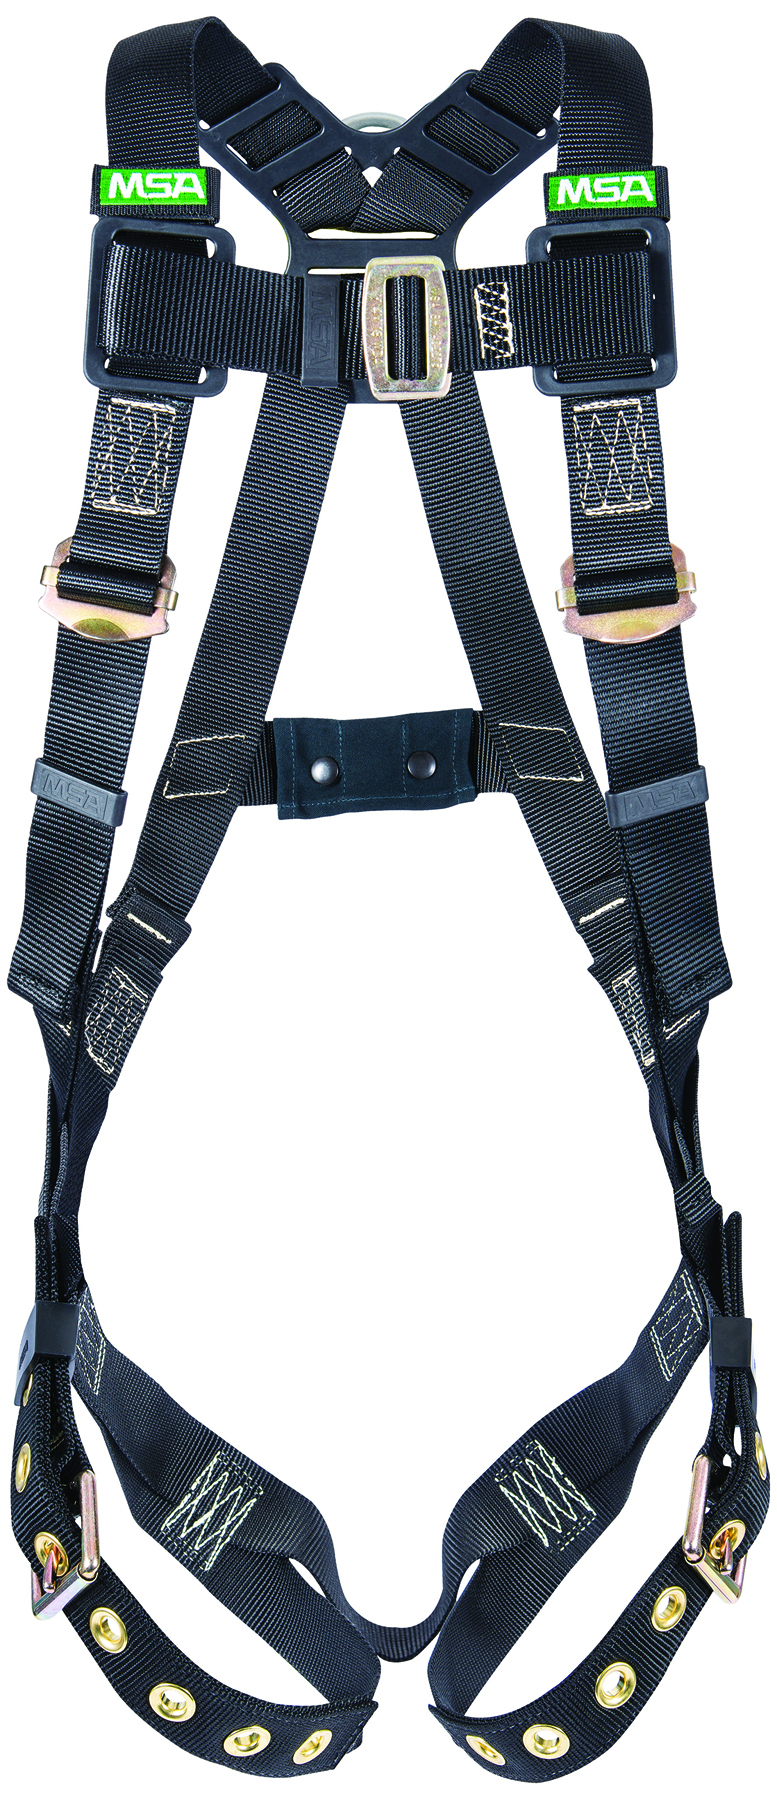 10152637 - Workman® Arc Flash Harnesses-Arc Flash Harnesses-Standard Size, with BACK STEEL D-Ring and Tongue Buckle Leg Straps----UOM: 1/EA